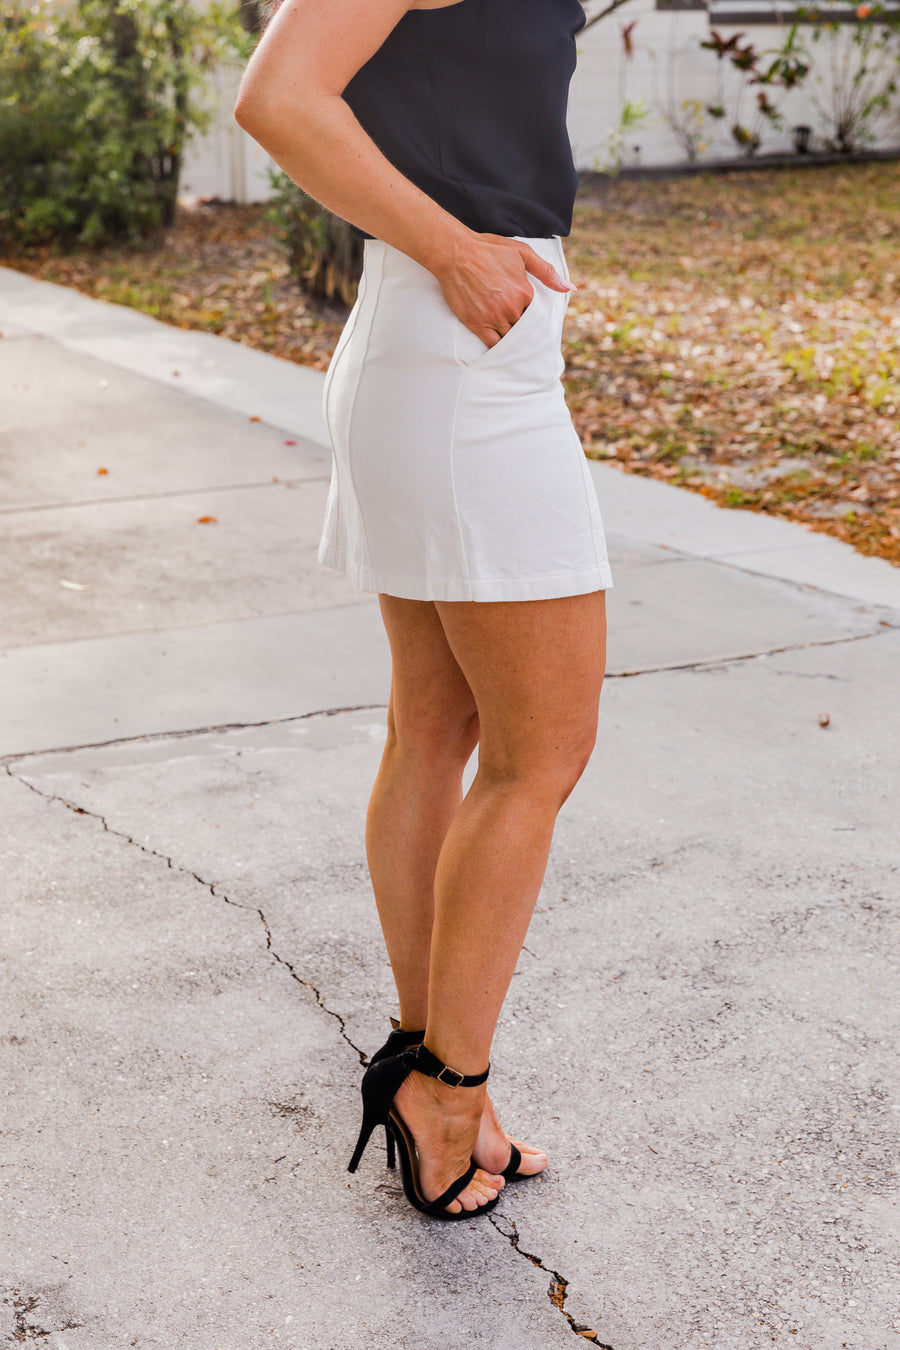 This white skirt has a fitted waistband that is buttoned and has a zipper fly on a paneled and fitted mini skirt. This denim mini skirt features side pockets.